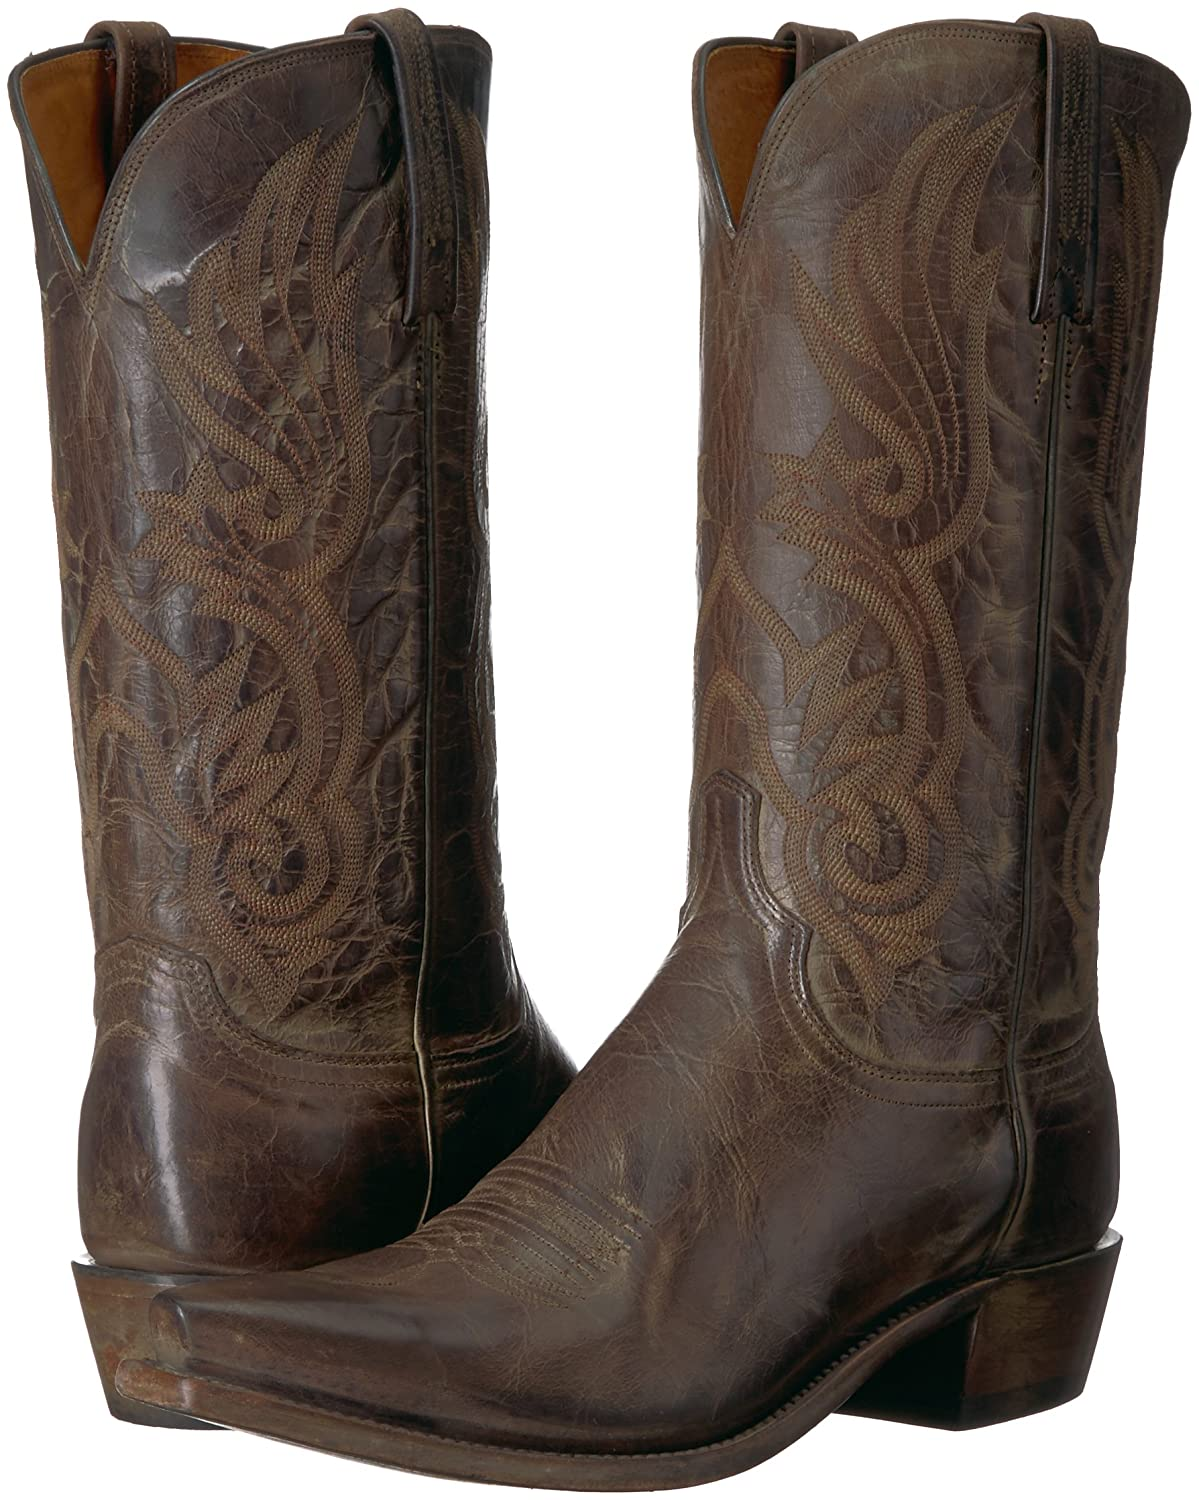 954d381a9a Lucchese Bootmaker Hombres Whittaker Western Boot Cacao antiguo